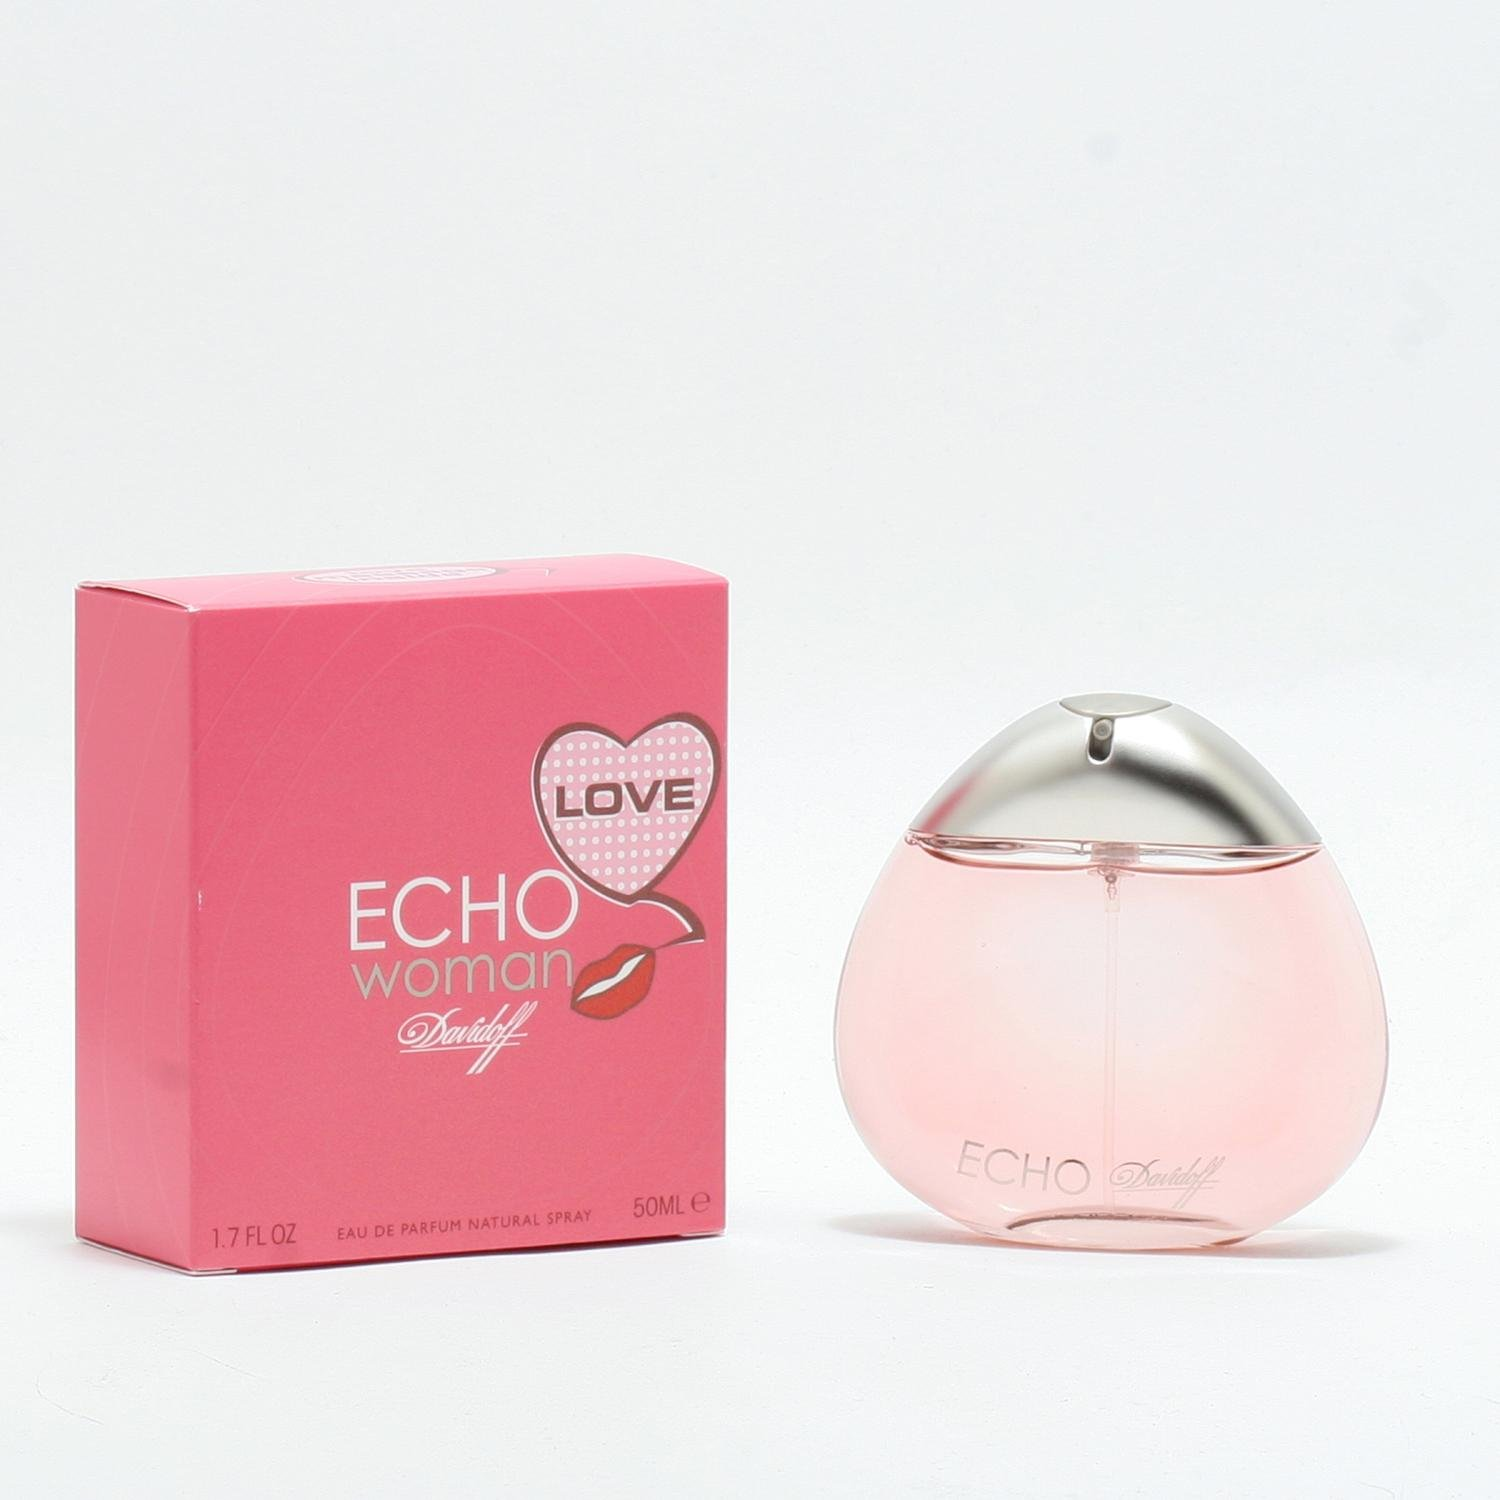 90ffbd266a Amazon.com : Davidoff Echo Woman 1.7 oz / 50 ml Eau De Parfum for women  Spray : Beauty